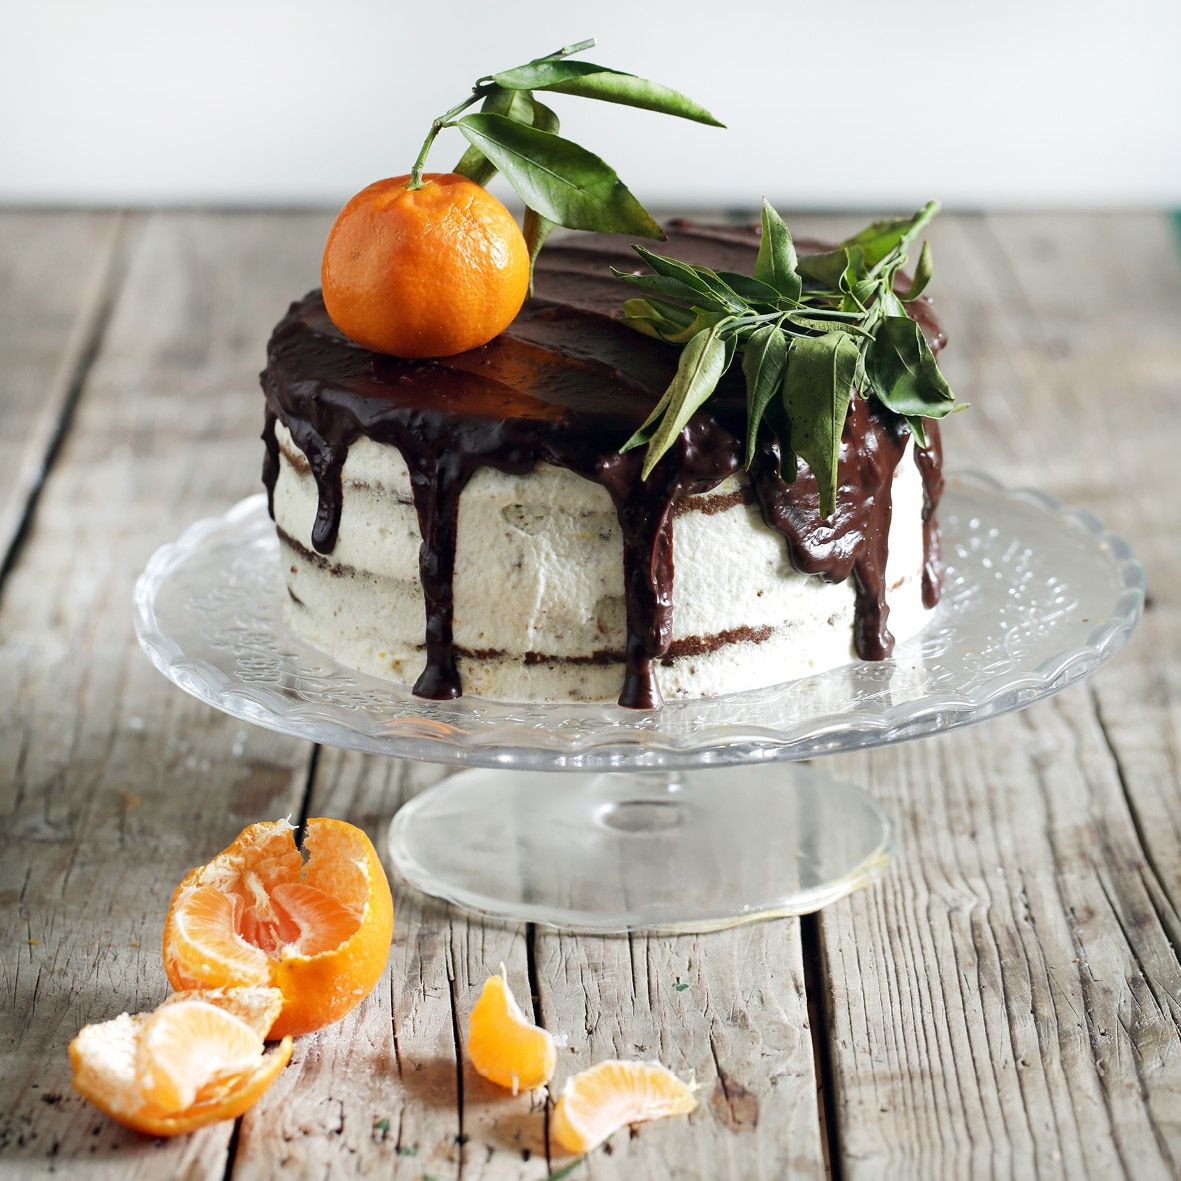 Mandarin_Almond_and_Chocolate_Cake.jpg